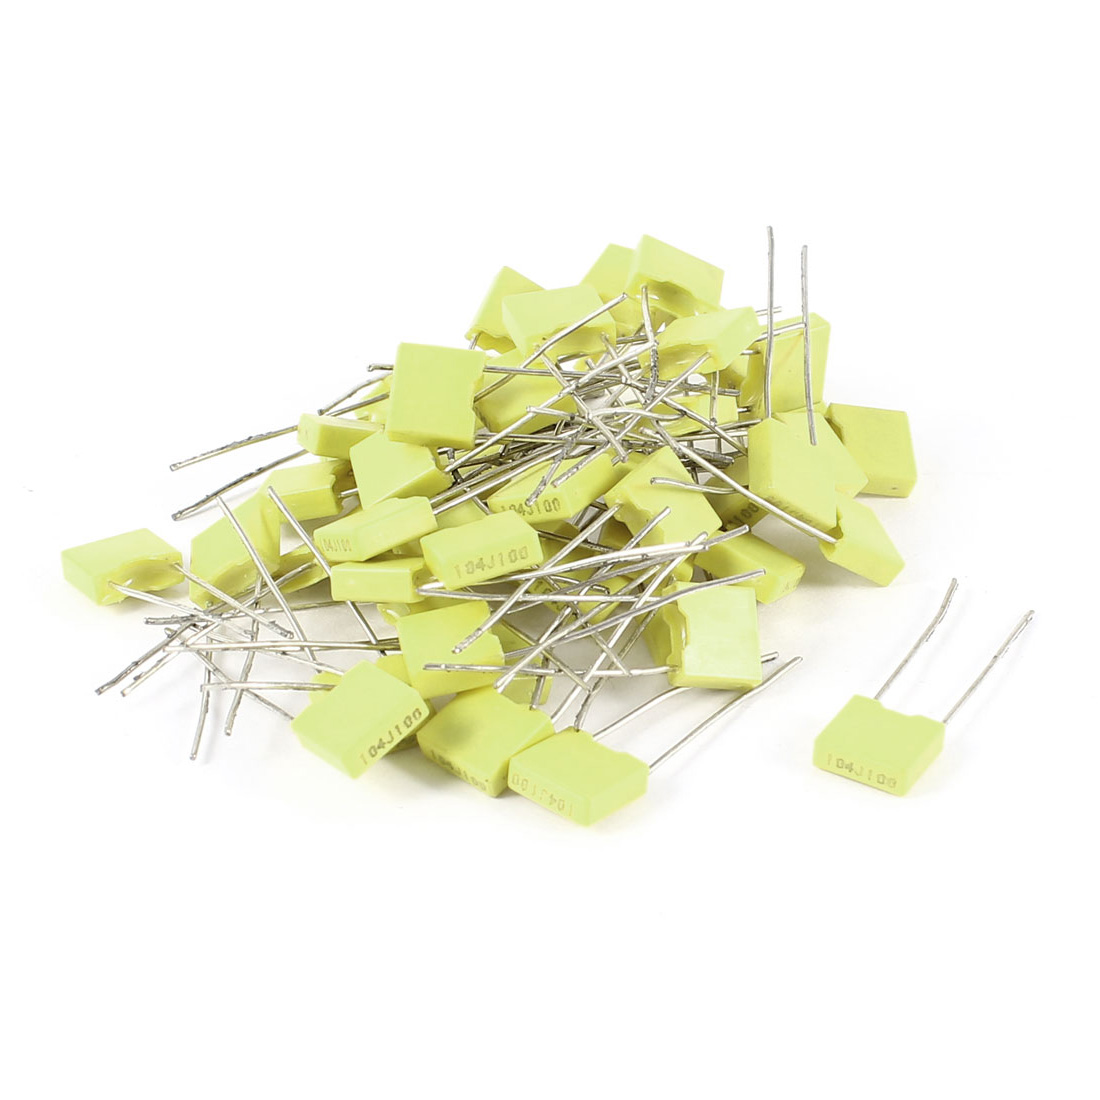 50 Pieces 100V 0.1uF 100NF 10% Radial Lead Box Type Correction Capacitors Yellow